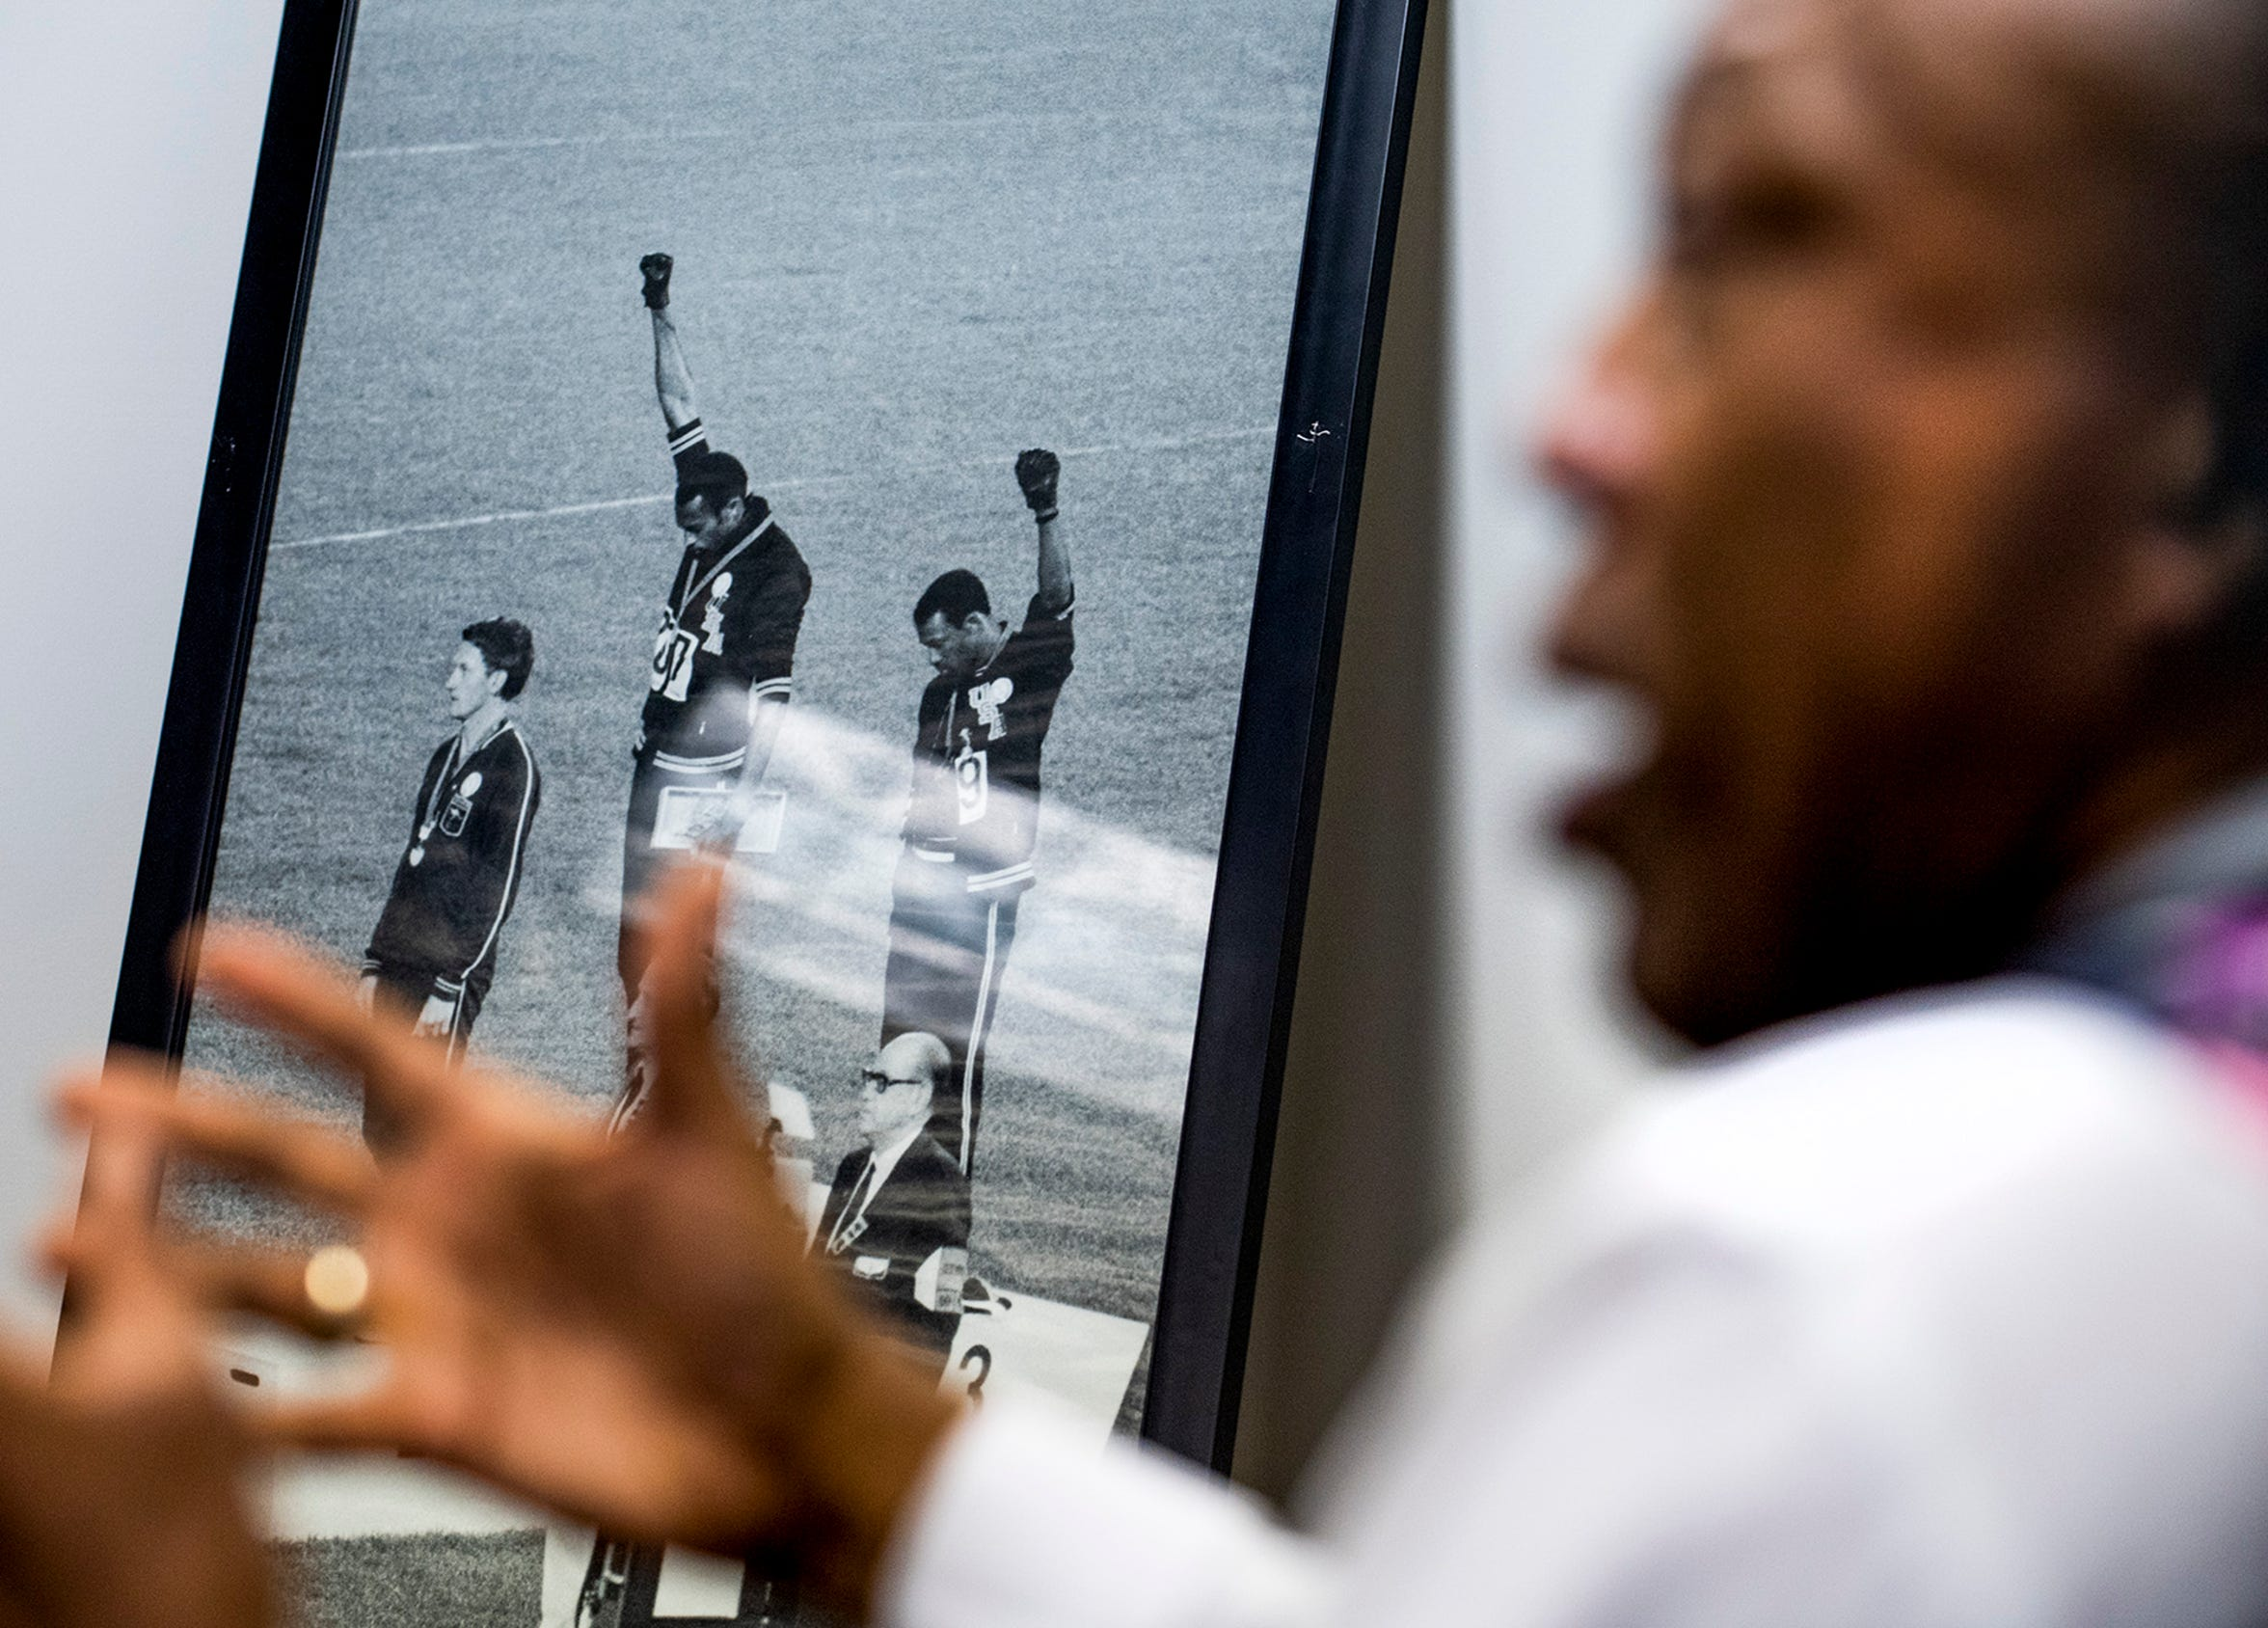 A photo of 1968 U.S. Olympic medalists Tommy Smith, center, and John Carlos raising the black power sign, is displayed in the office of  sports attorney Don Jackson in Montgomery, Ala., on Monday February 24, 2020.